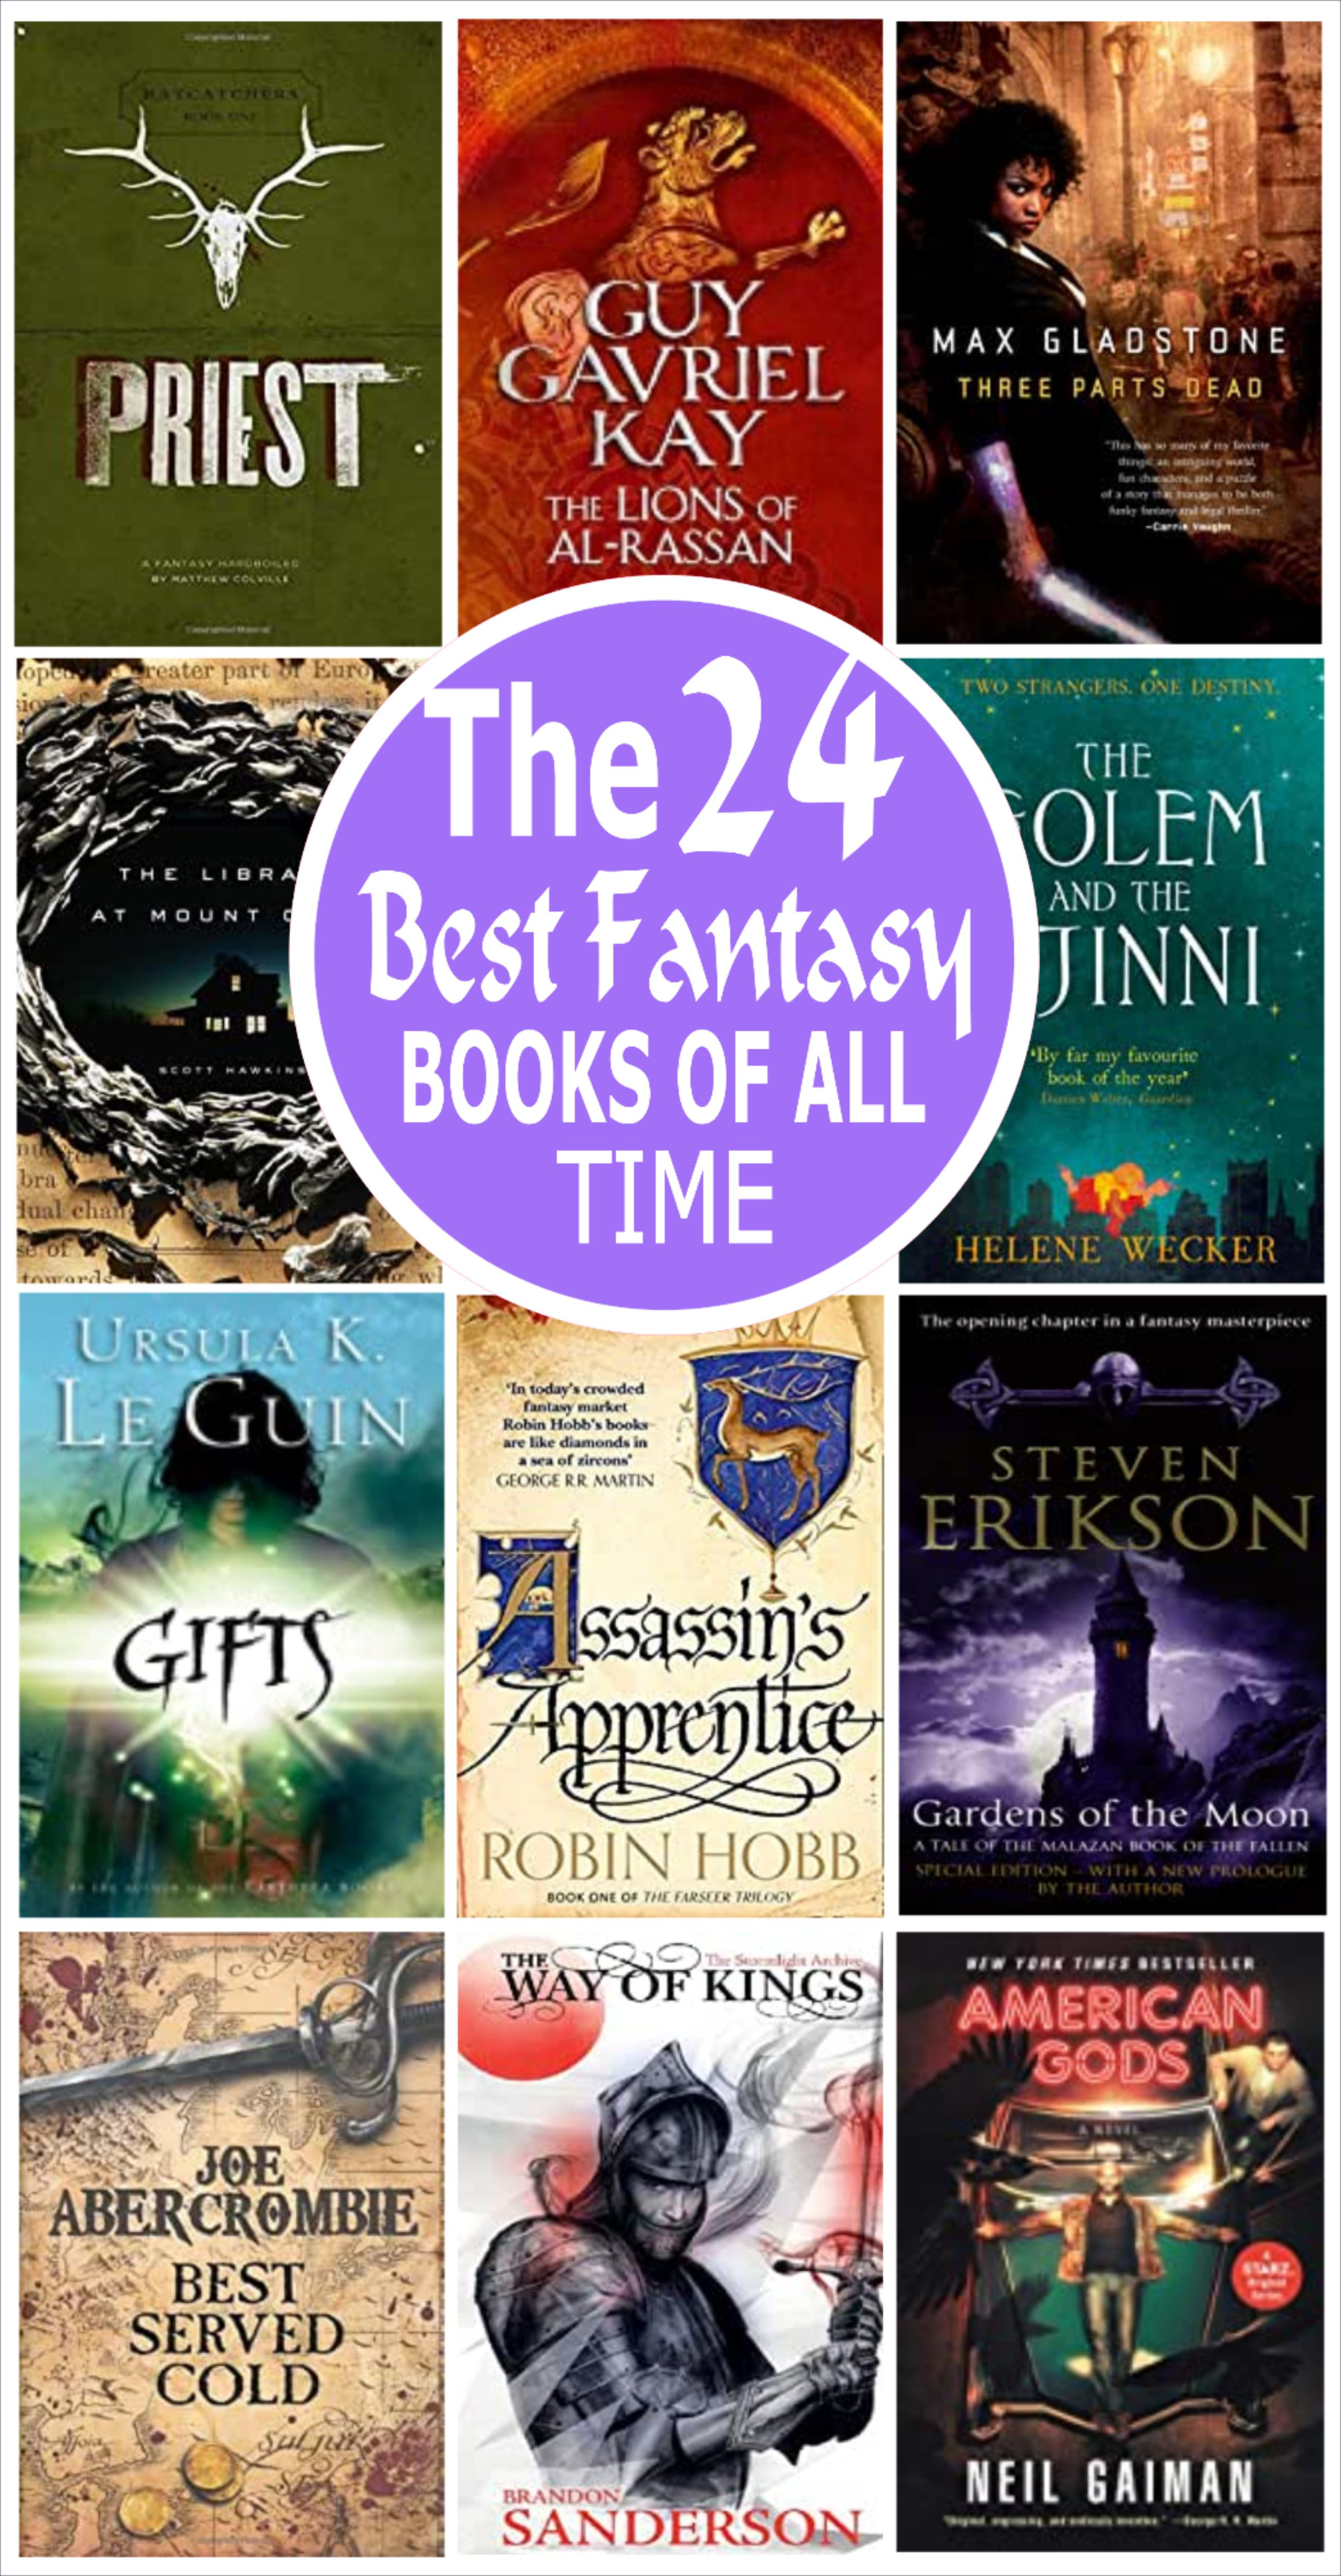 The Greatest of the Great: 50 of the Best Fantasy Books Ever Written